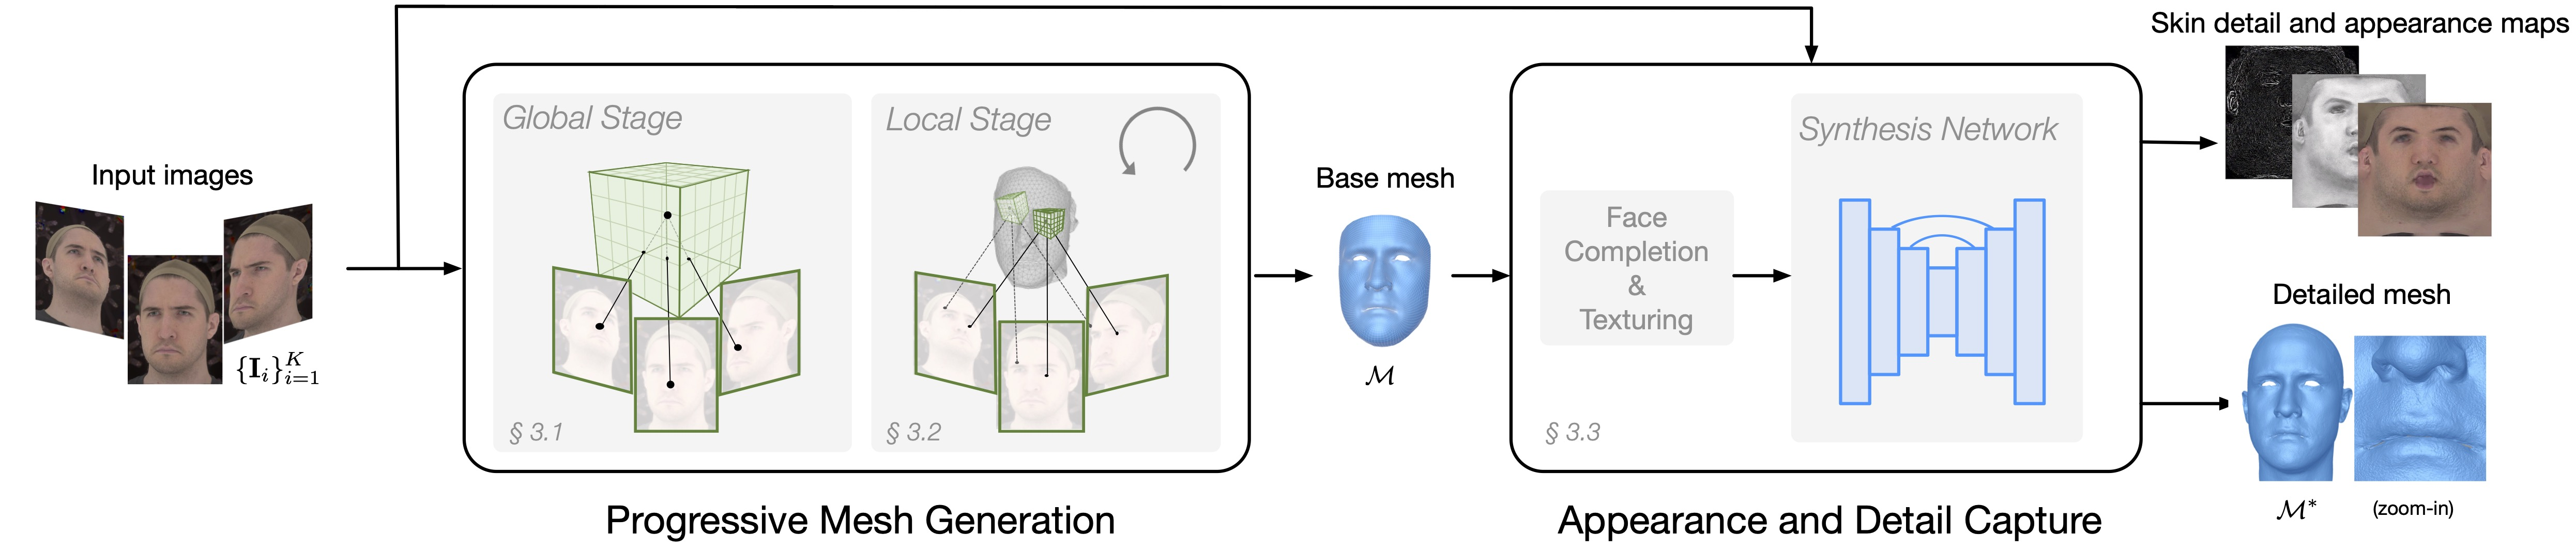 Overview of our end-to-end face modeling system. Given images captured from multi-views, the progressive mesh generation network predicts an accurate face mesh in consistent topology. Then the appearance and detail capture network synthesizes high-resolution skin detail and attribute maps, which enables highly detailed geometry and photo-realistic renderings.